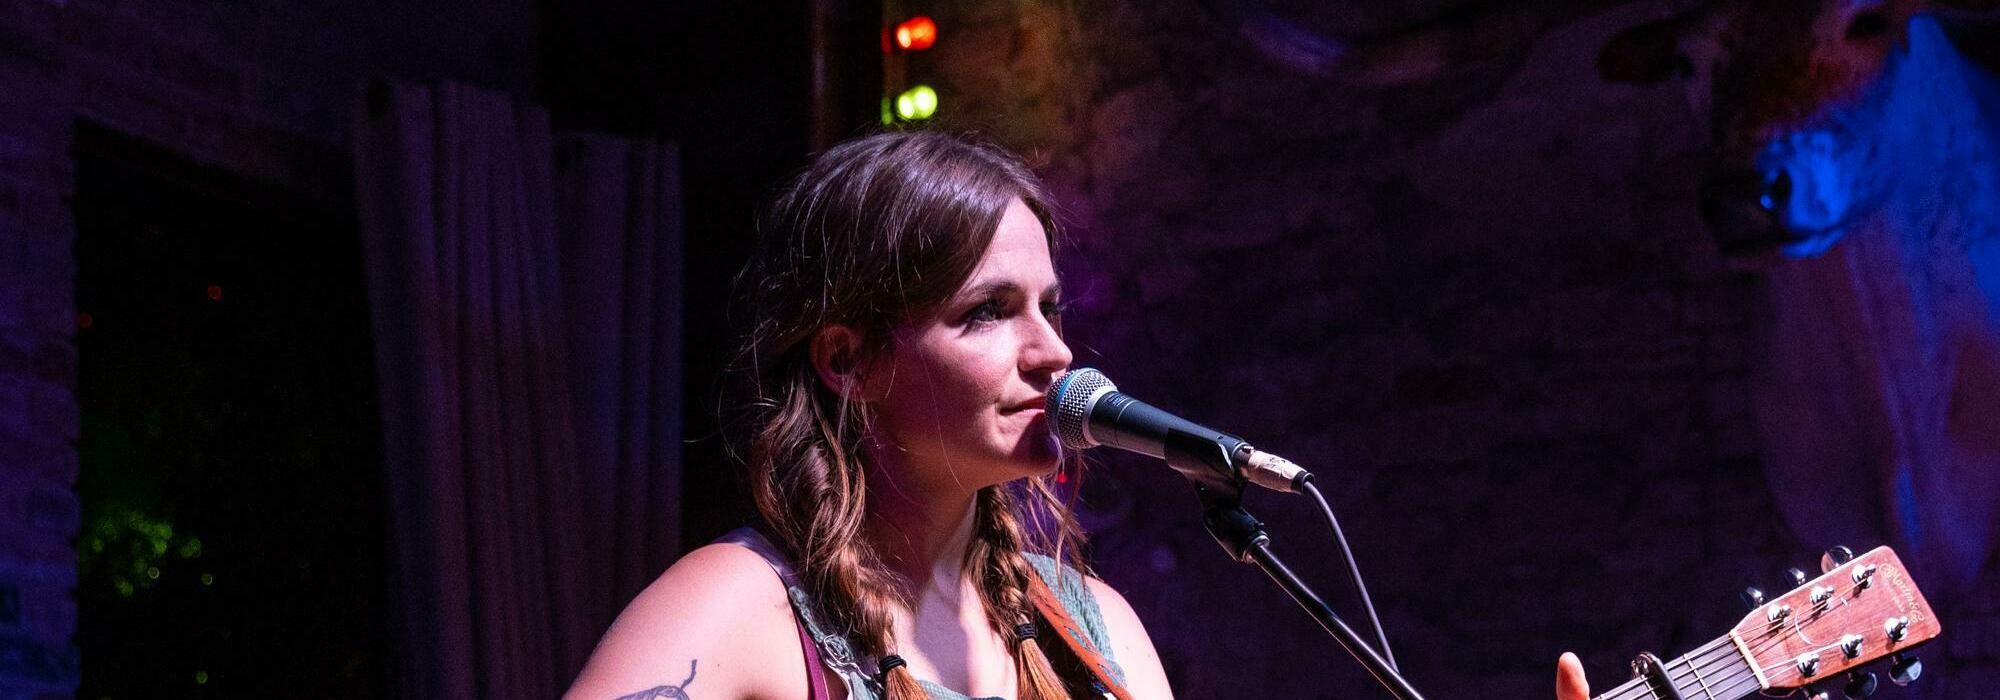 A Erin Rae live event